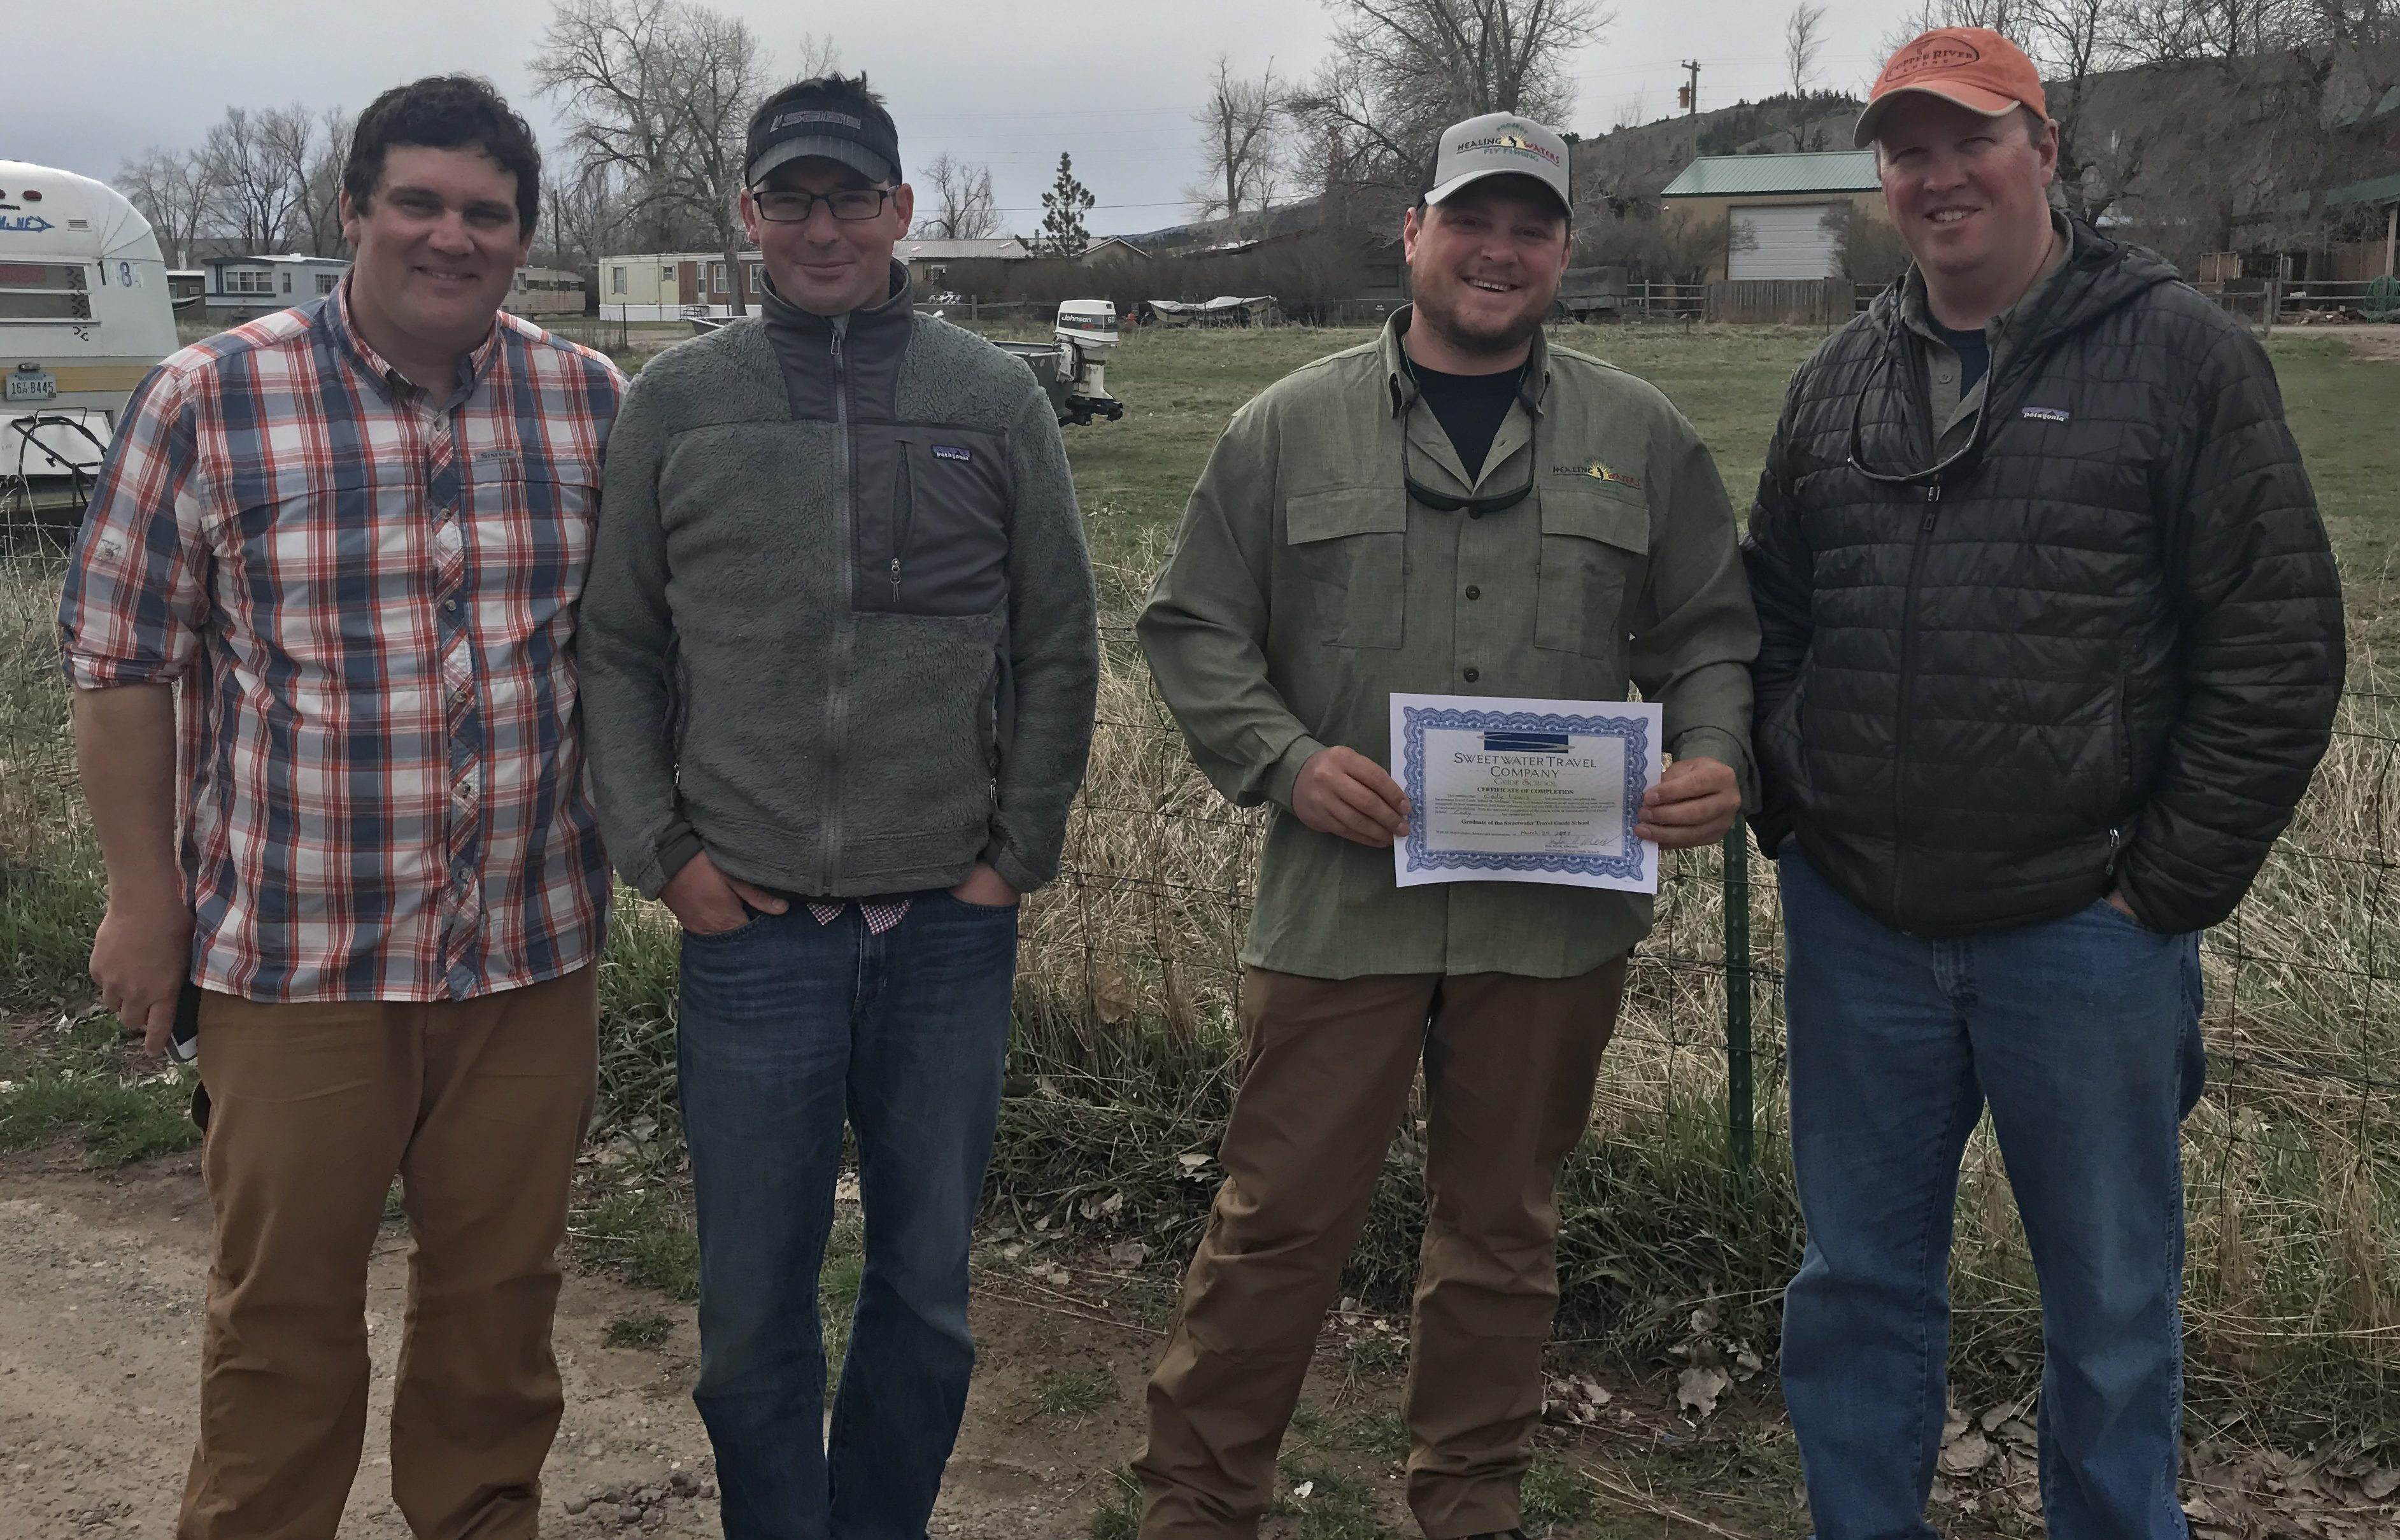 PHWFF participant from Casper, WY graduates from Sweetwater Guide School